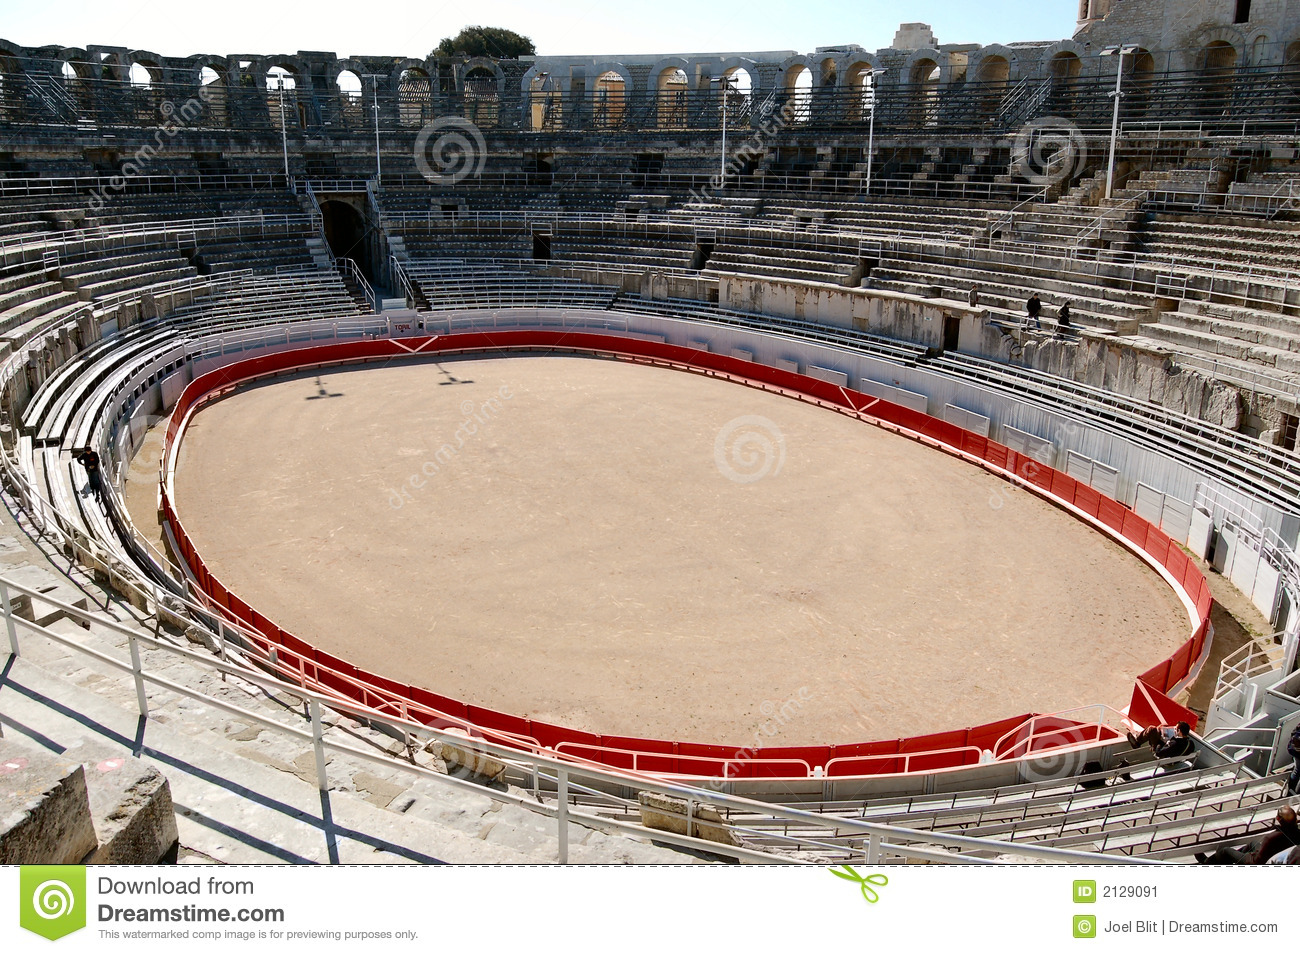 Bull ring in Roman Colisseum